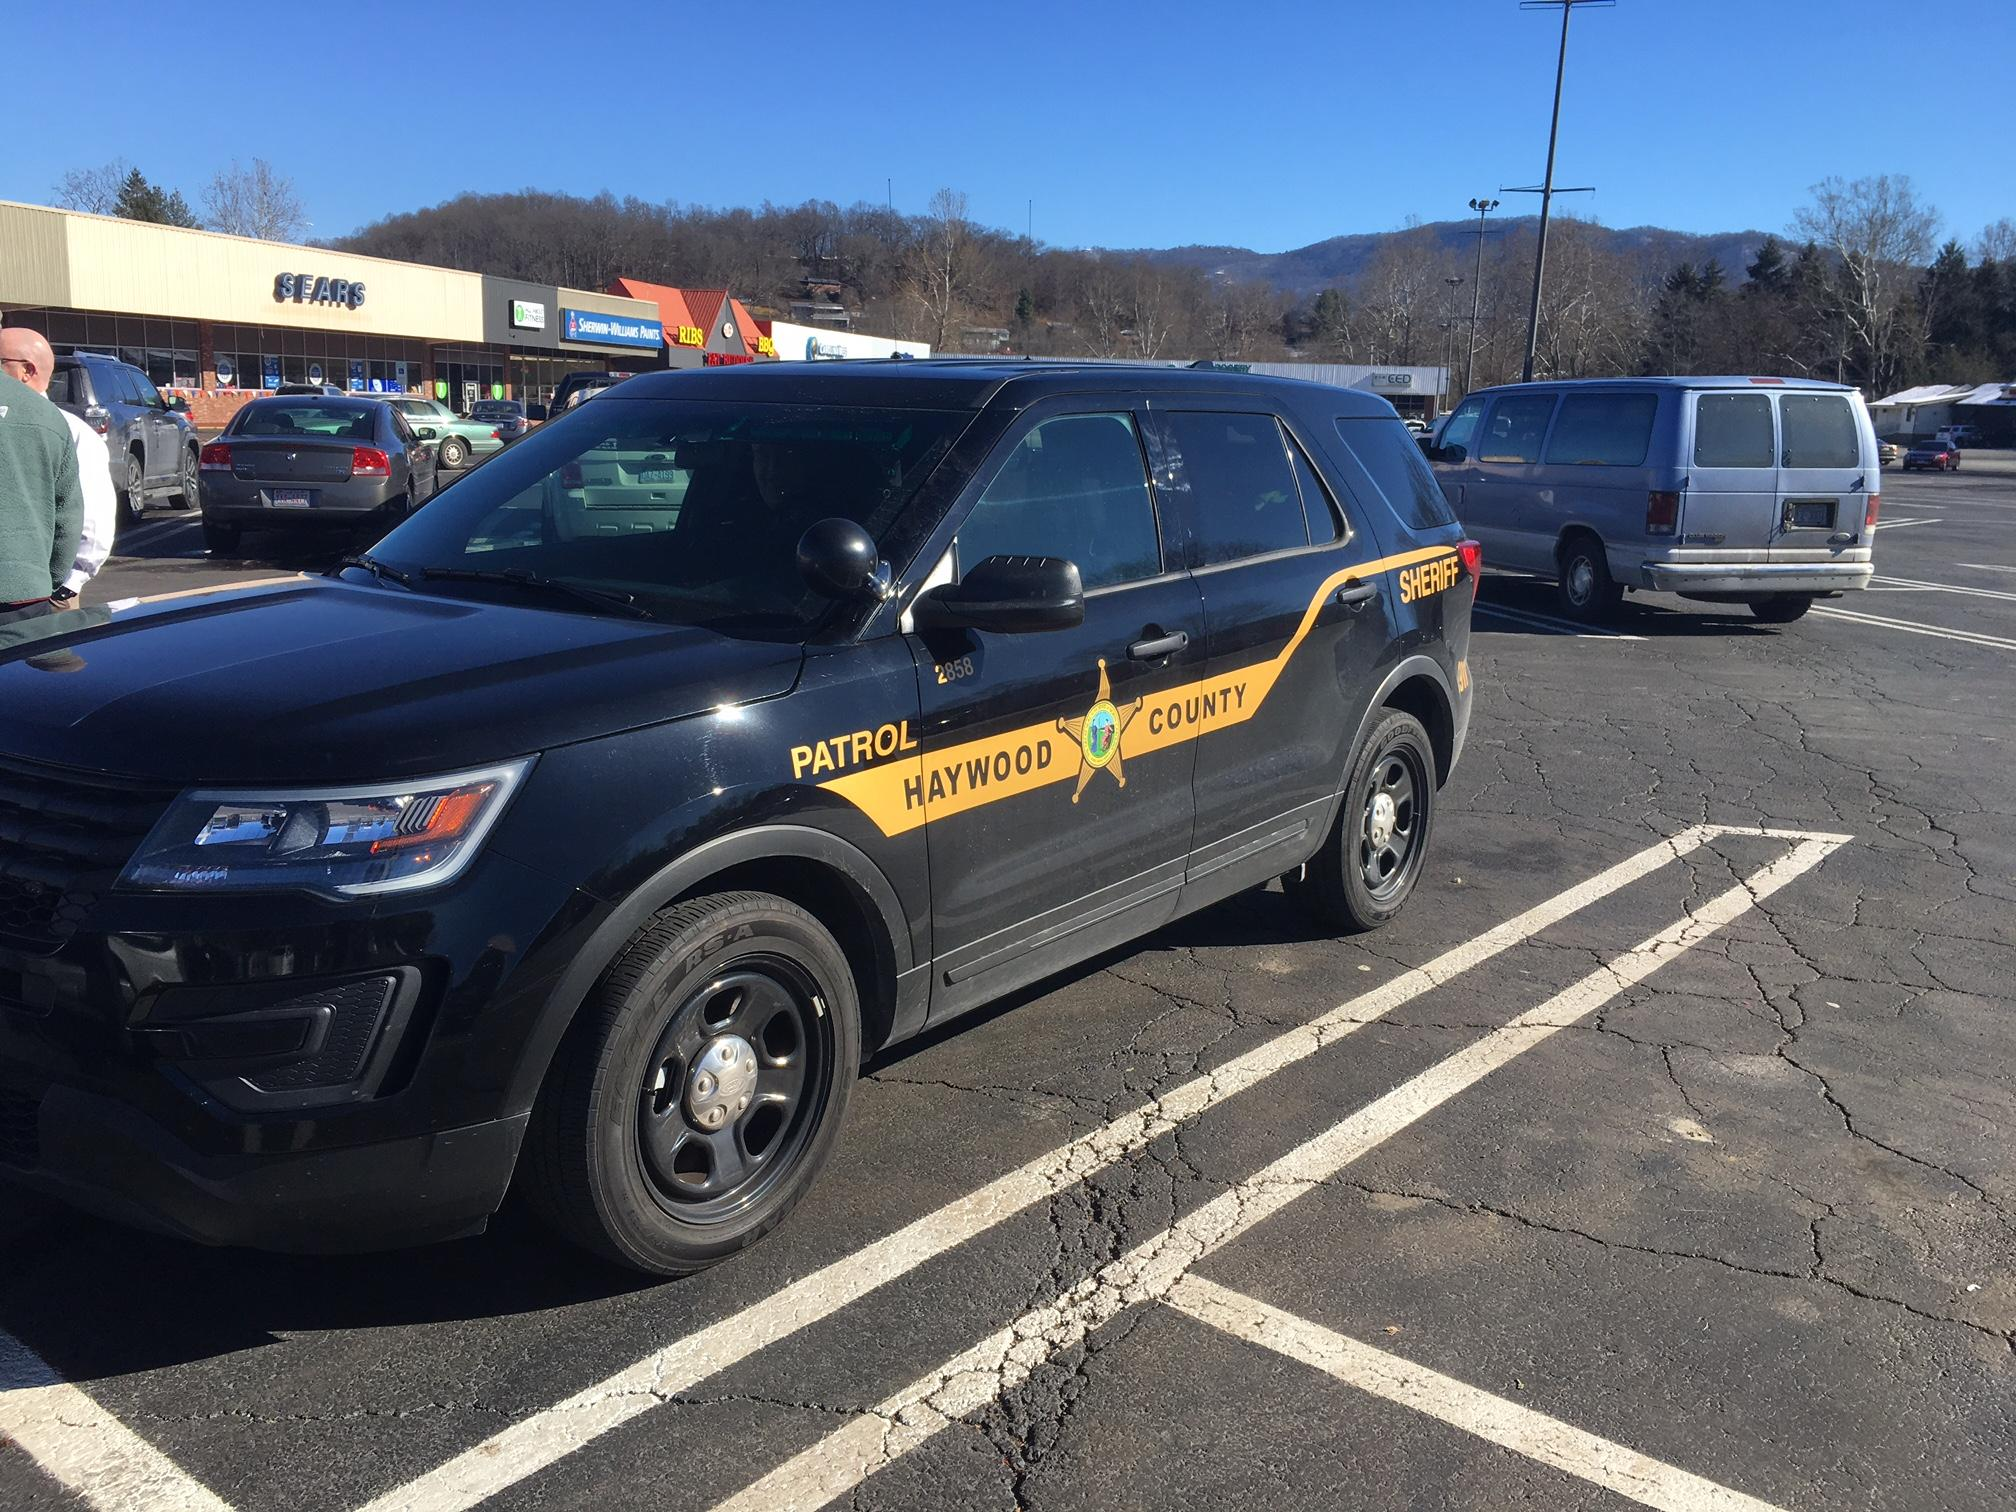 Haywood County's Unified Narcotics Investigative Team conducted a recent 3-week crackdown, which led to 29 felony arrests and 129 citations. (Photo credit: WLOS)